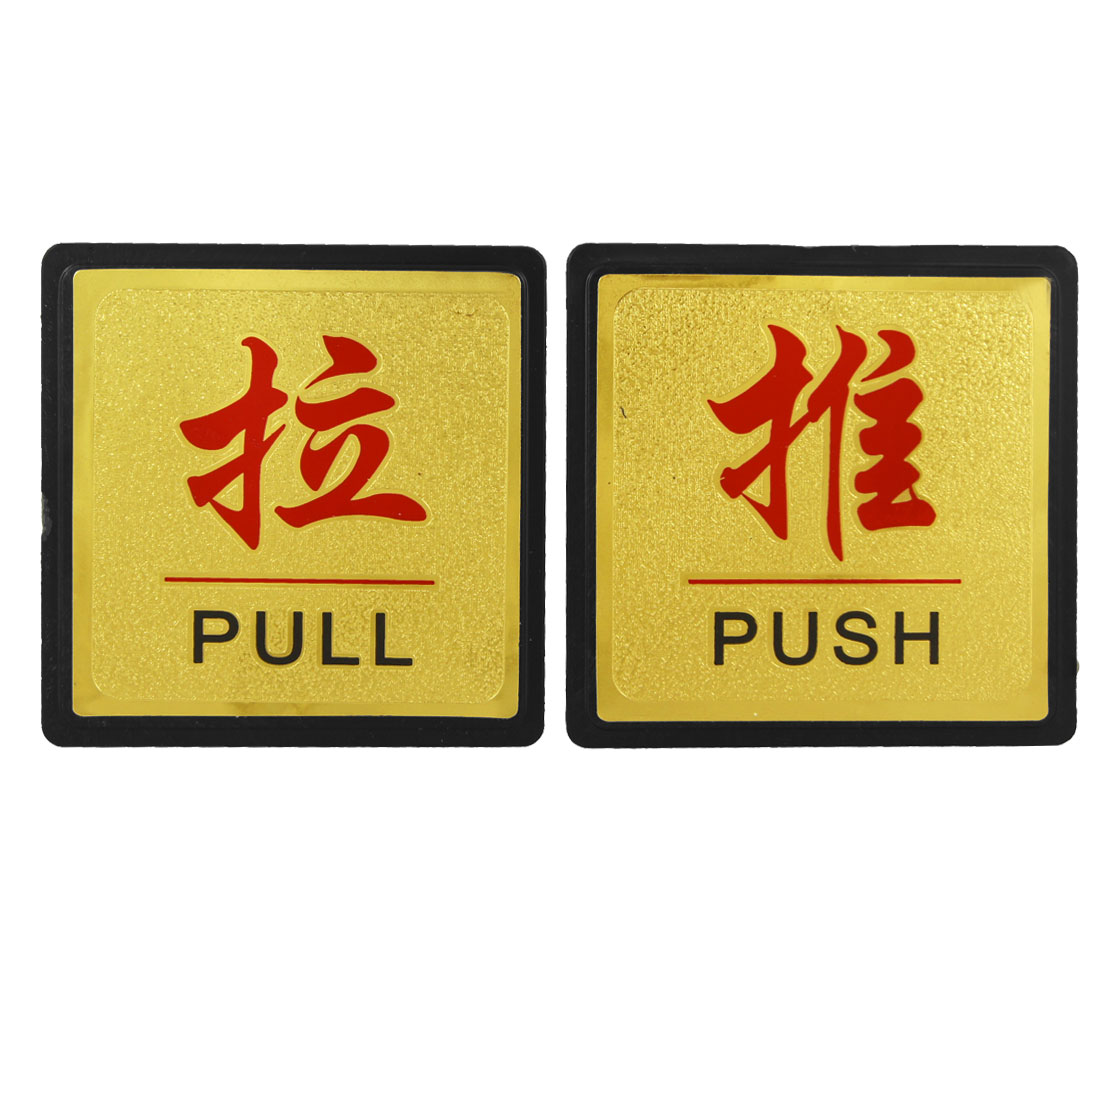 2 in 1 Wall Door Pull Push Sign Board Instruction Sticker Gold Tone